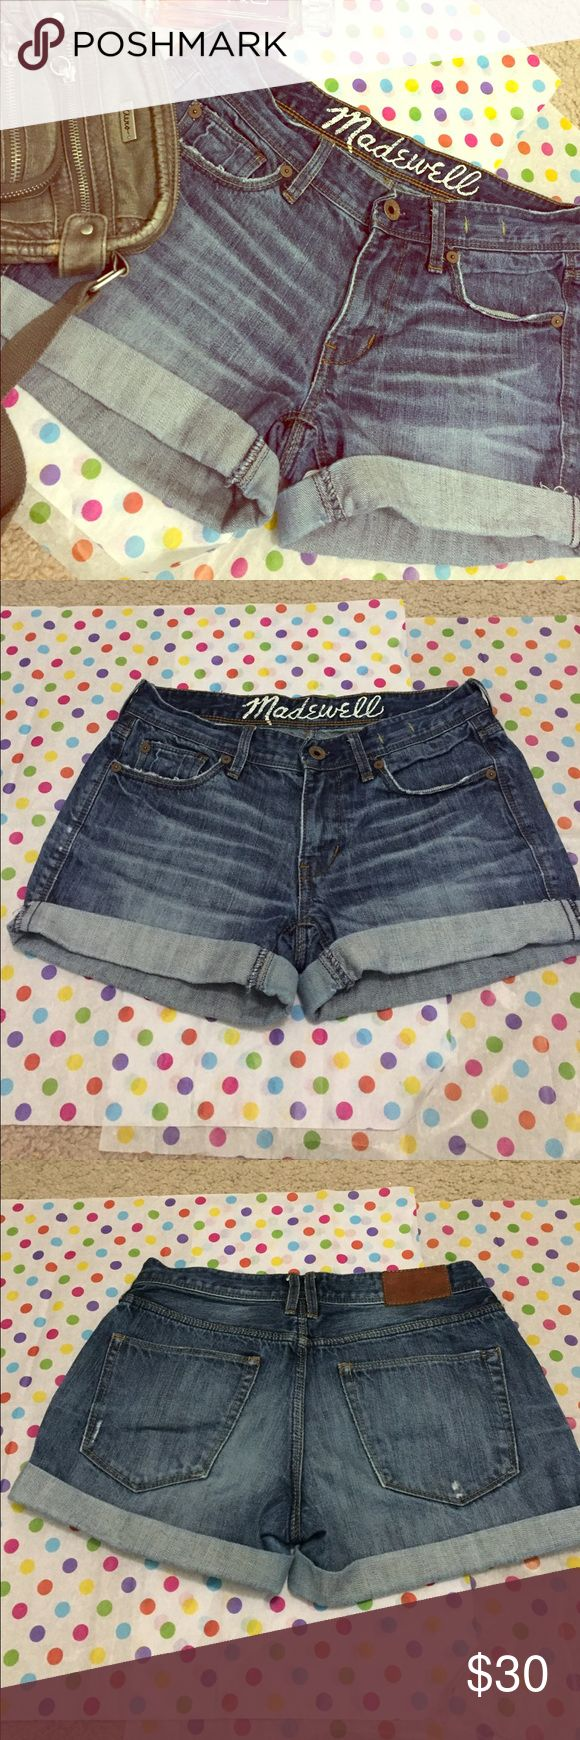 "Size 24 Madewell Shorts These are a pair of simple yet cute Madewell denim shorts. They have some fraying under the cuffs, which can be revealed by unrolling the cuffs, or hidden by rolling the cuffs. The word ""Madewell"" is cracked from washing, but that is the only flaw. Madewell Shorts Jean Shorts"